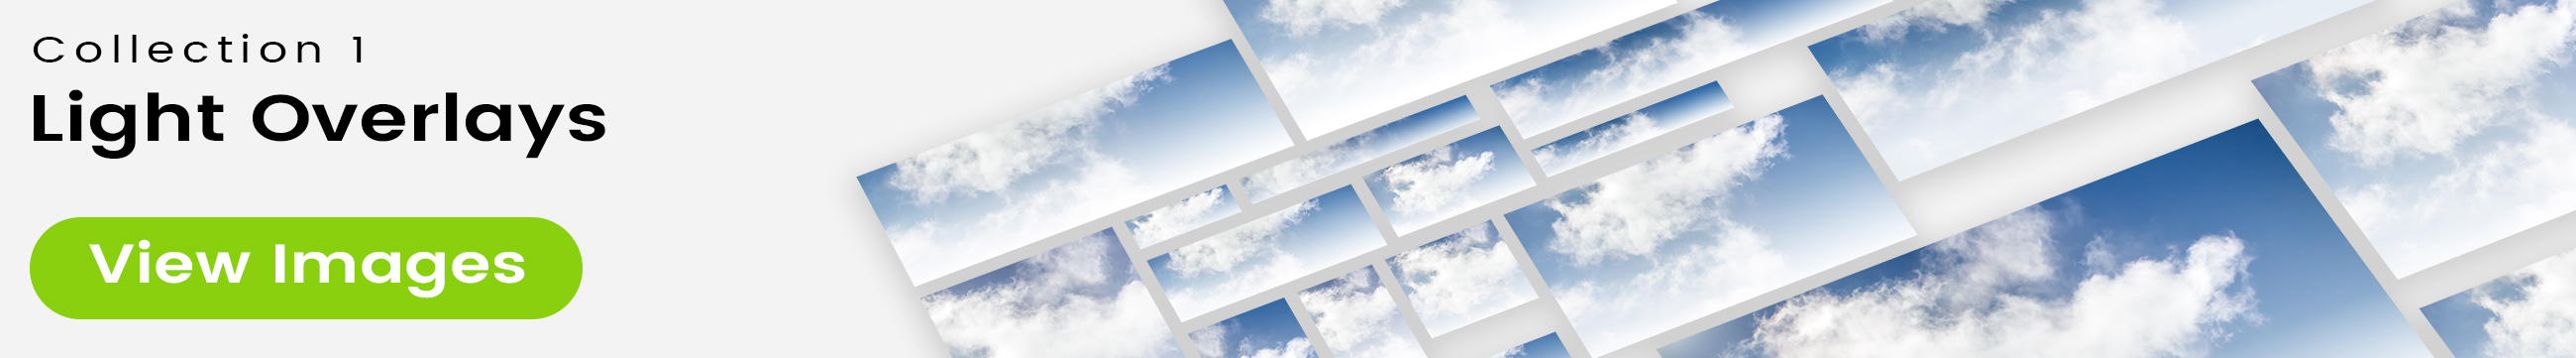 See 25 bonus images included with clouds stock image 9474. Collection 1 of 4 features a light overlay design.